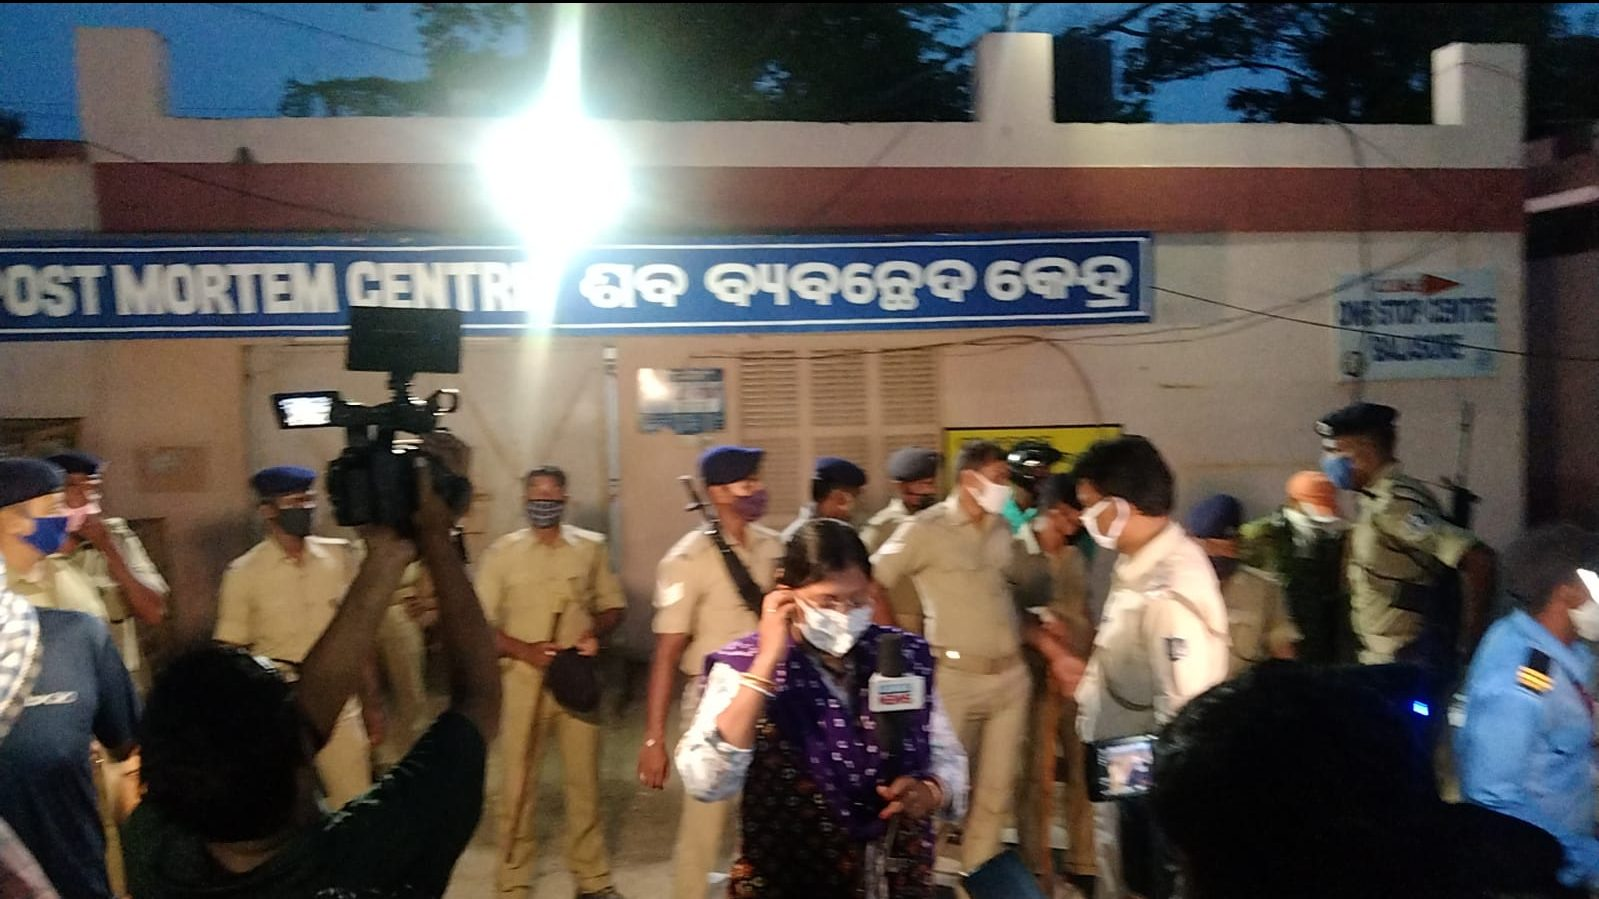 Hyder death: Ban orders in Kendrapara for a week